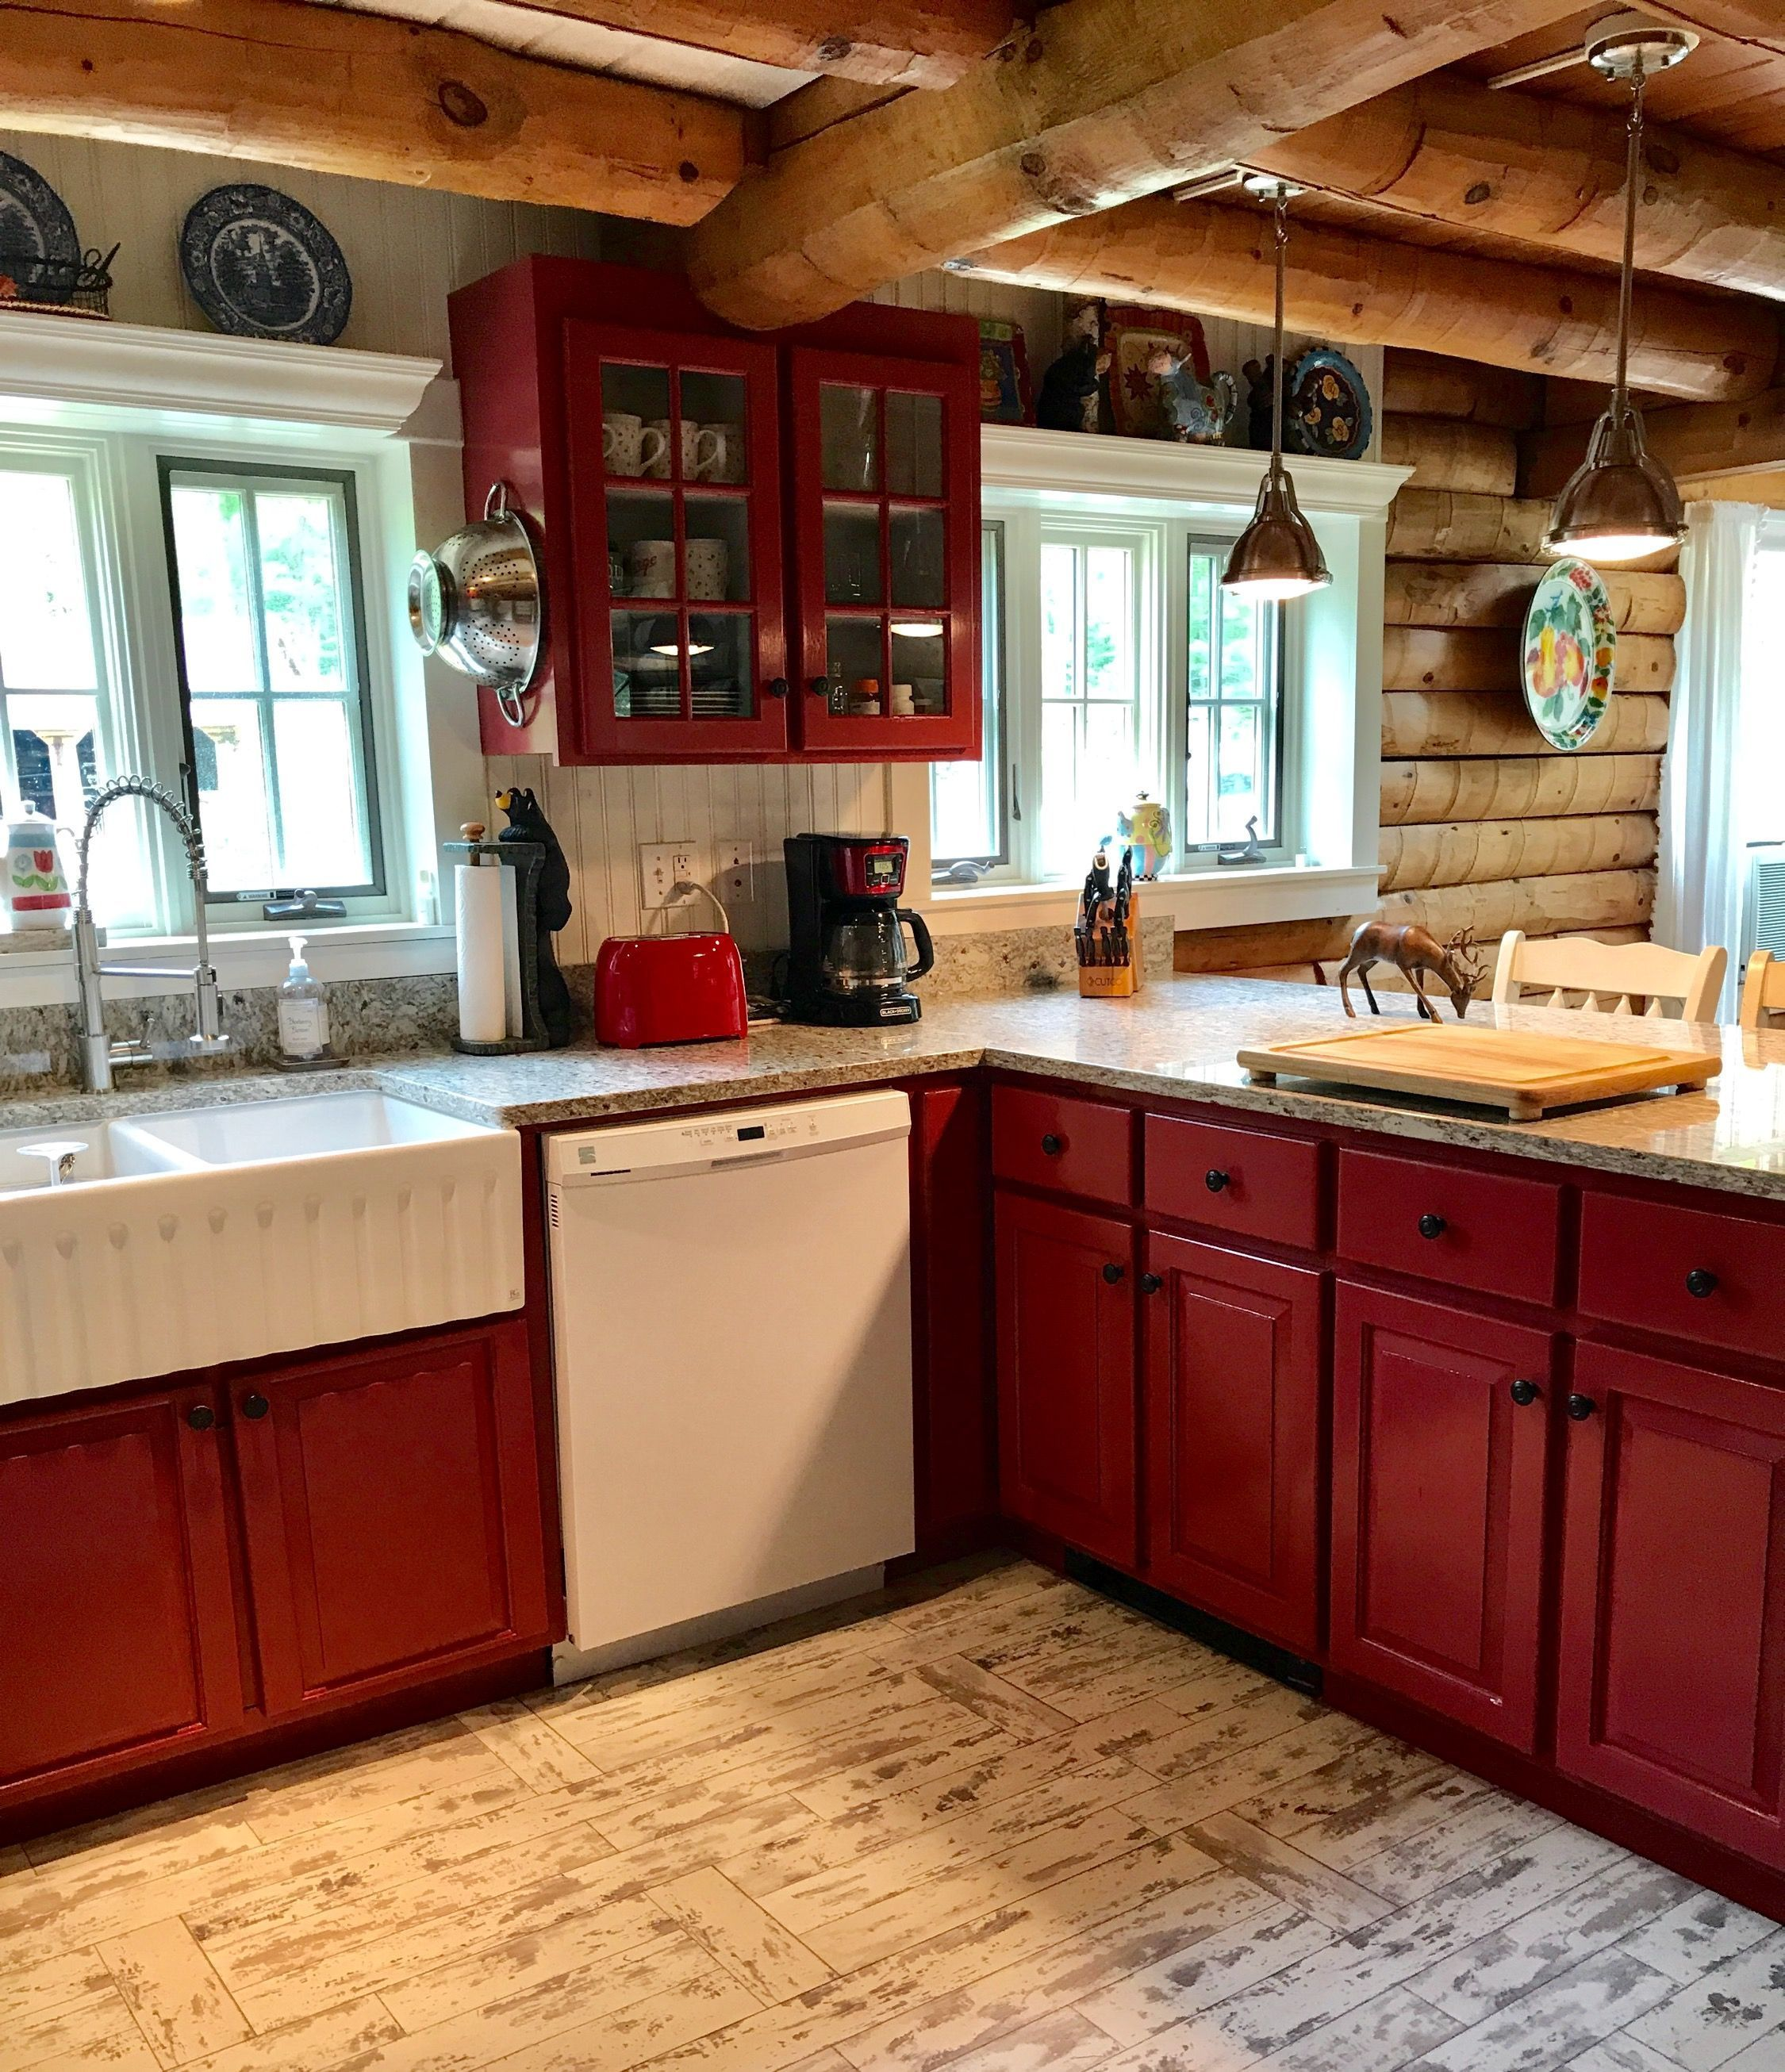 55 Simple Rural Farmhouse Barn Wood Kitchen Ideas Decoona Log Cabin Kitchens Red Kitchen Cabinets Log Home Kitchens